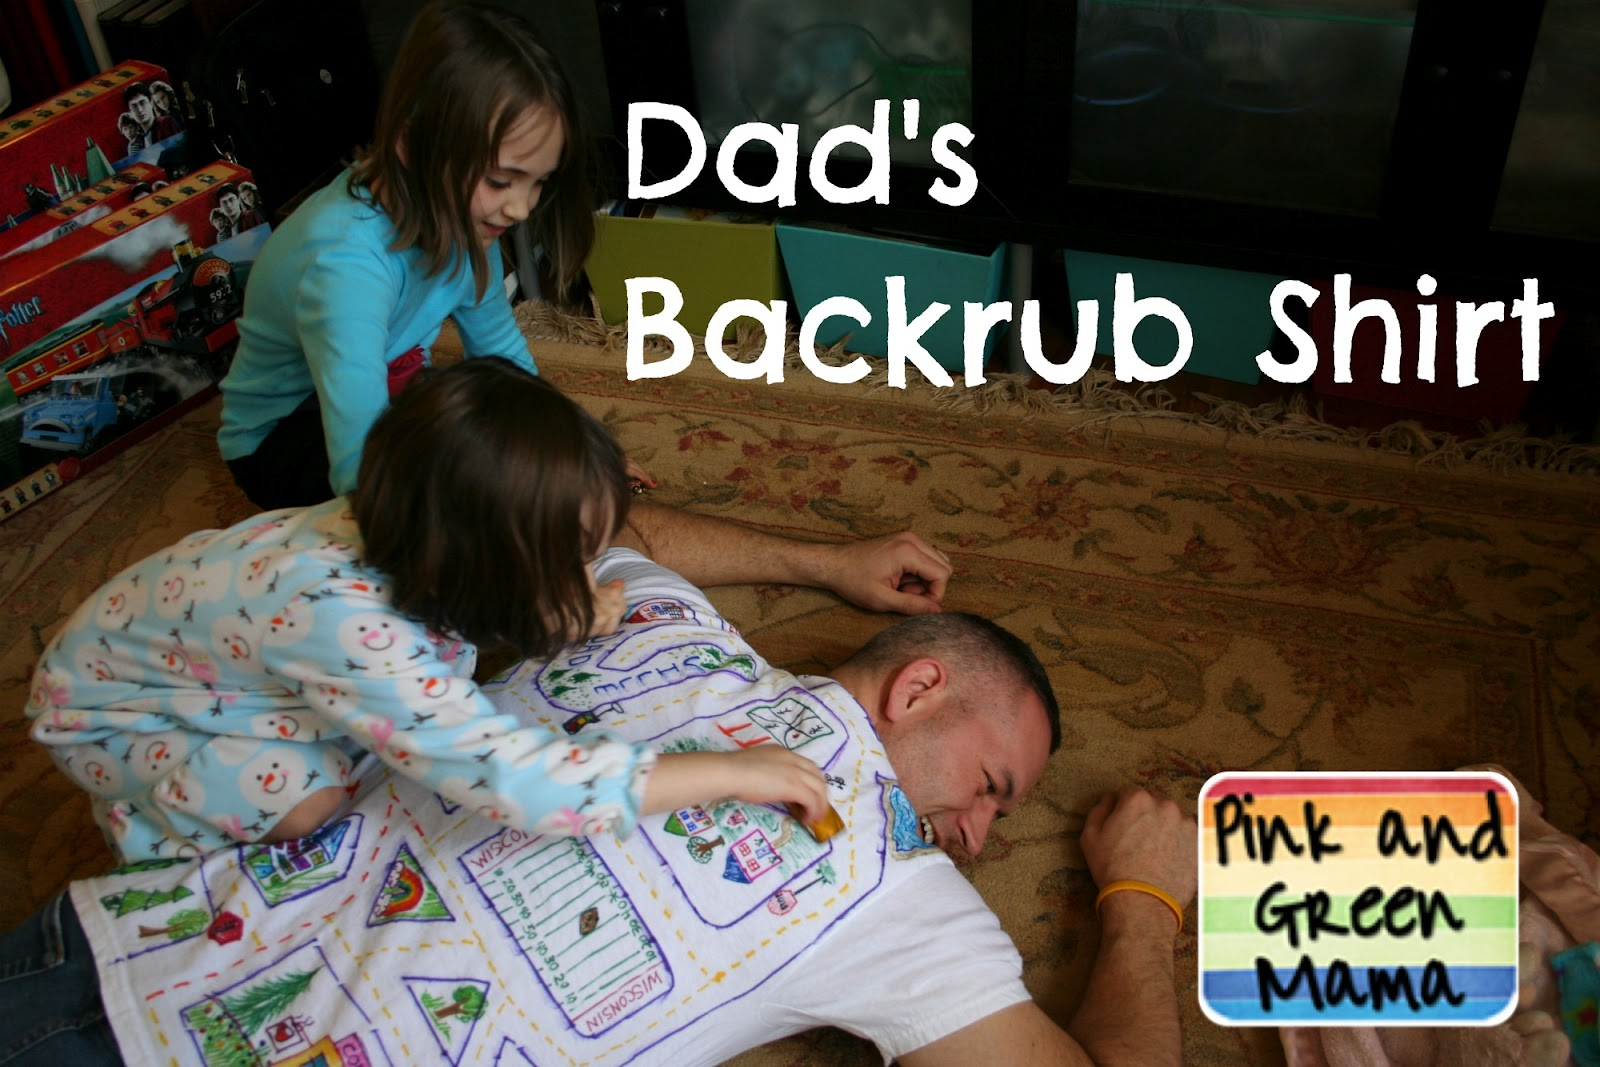 Easy Diy Birthday Gifts For Dad Pink And Green Mama Homemade Father 39s Day Gift